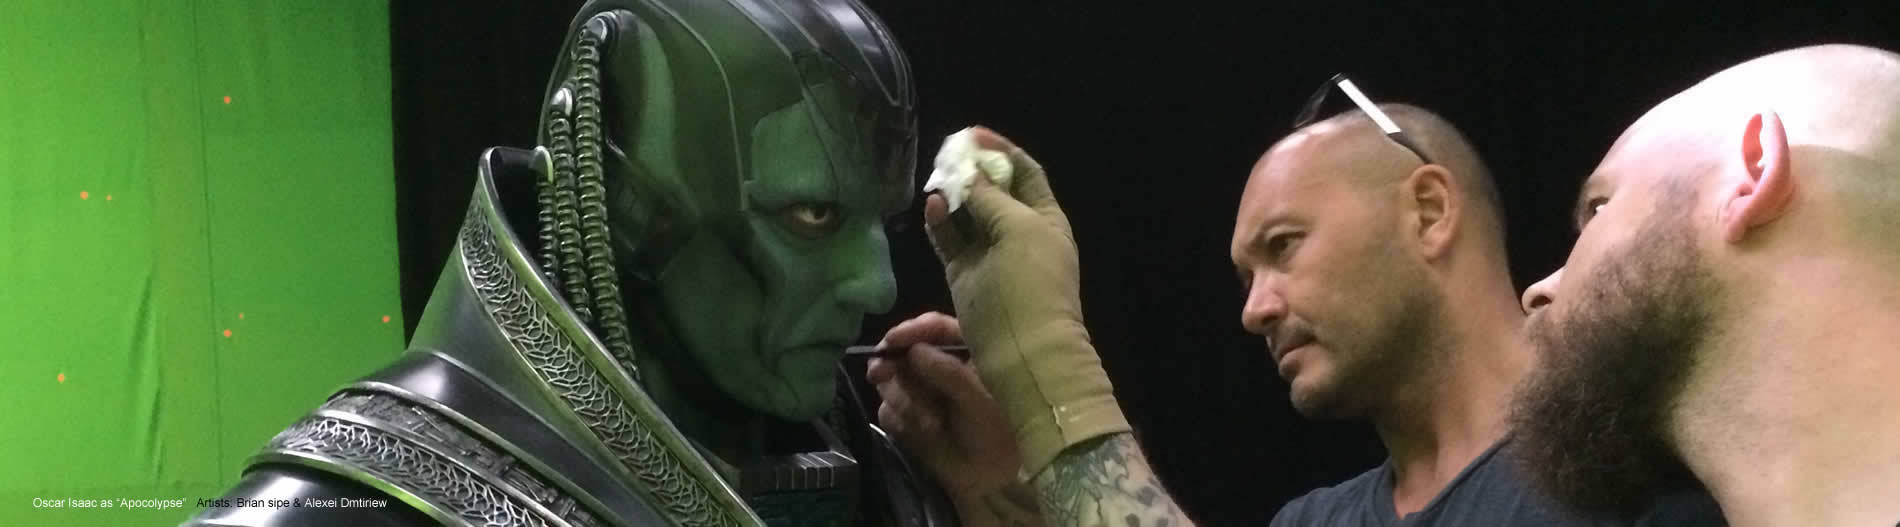 SFX Makeup and Movie green screen with brian sipe